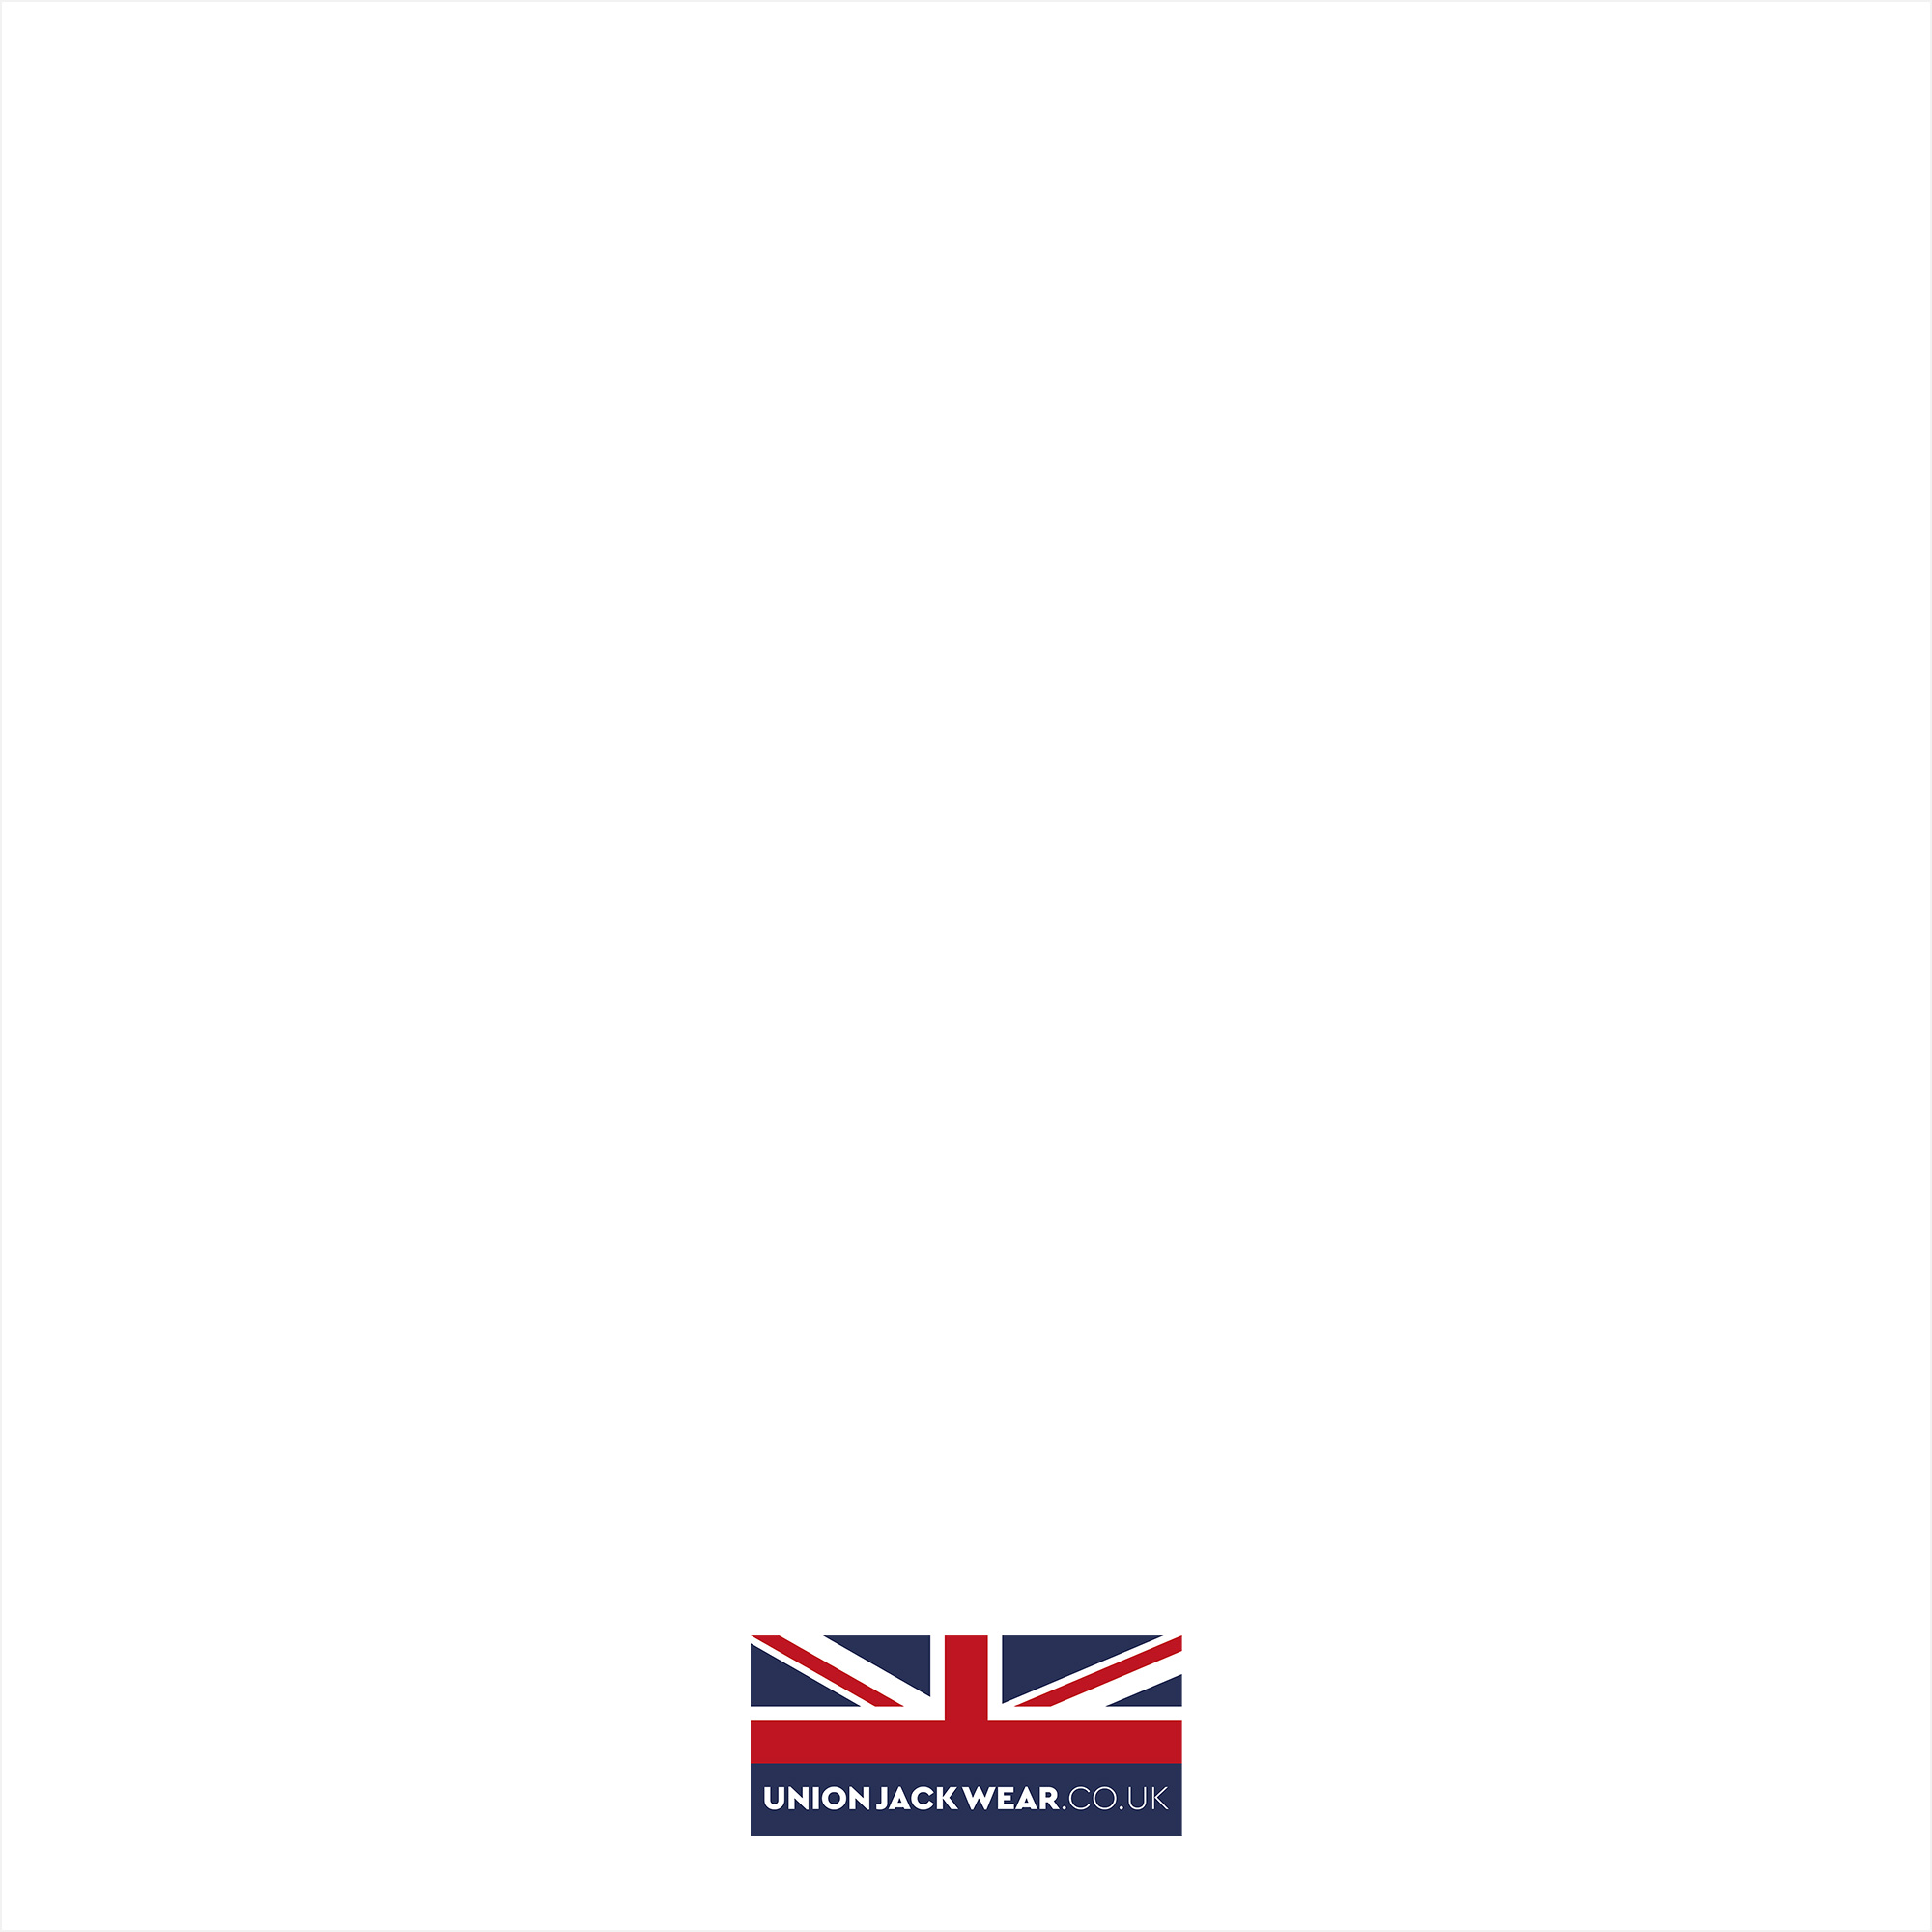 Union Jack Wear Gibraltar Flag 5' x 3'